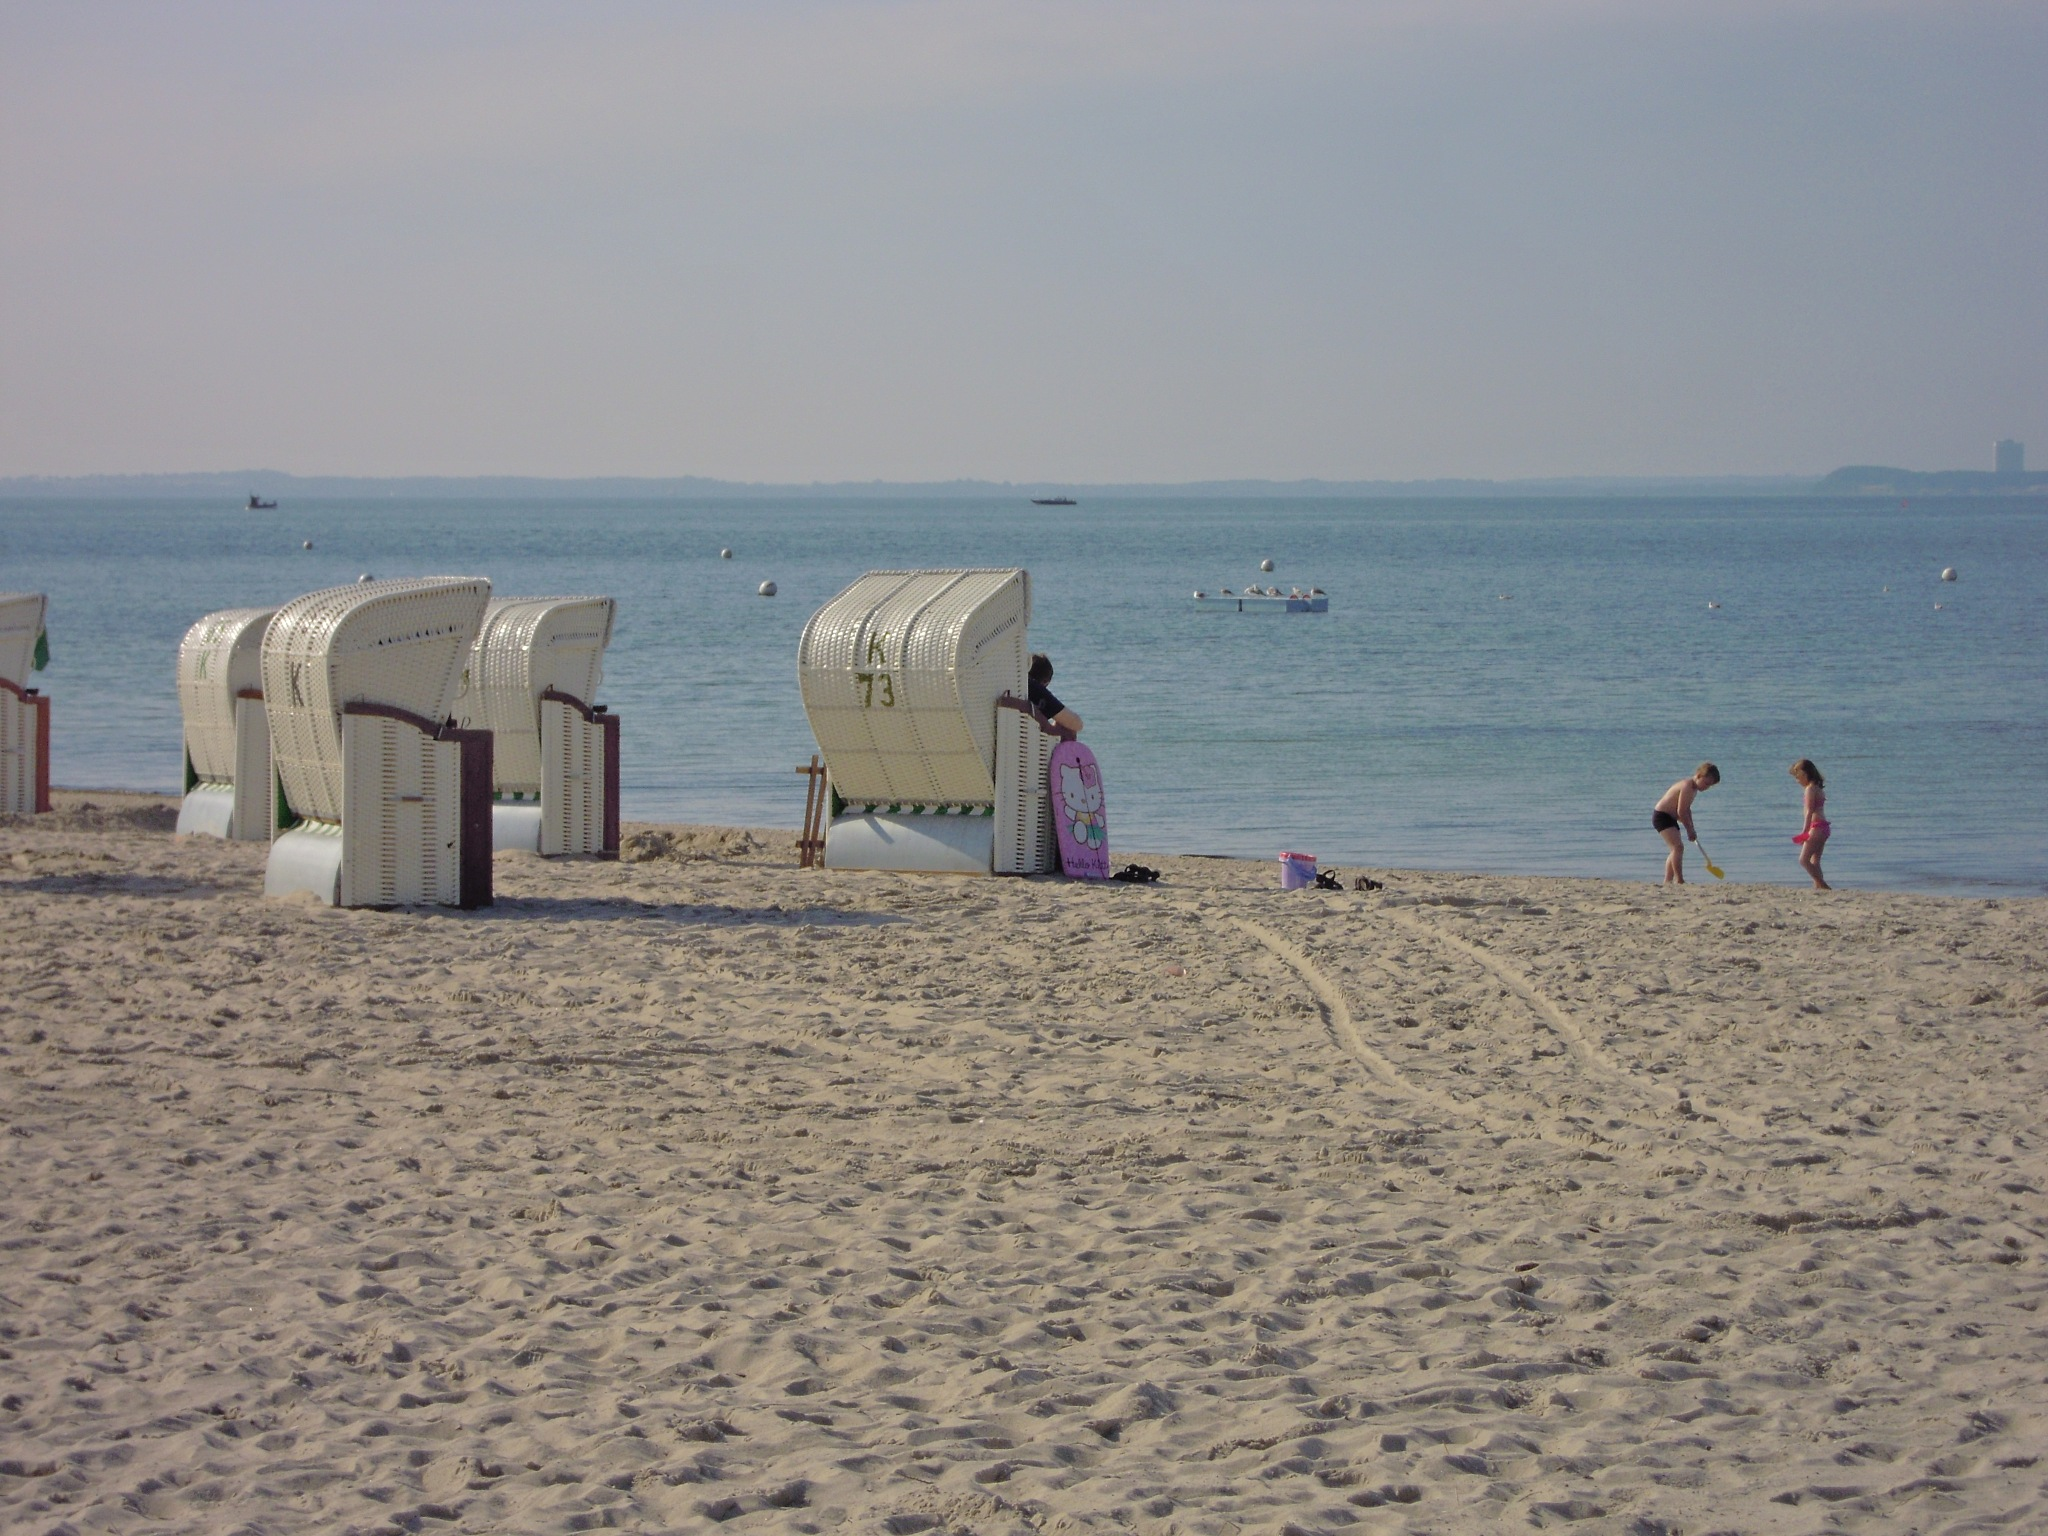 Strandkörbe (beach chairs) - Baltic Sea by Bice Portinari